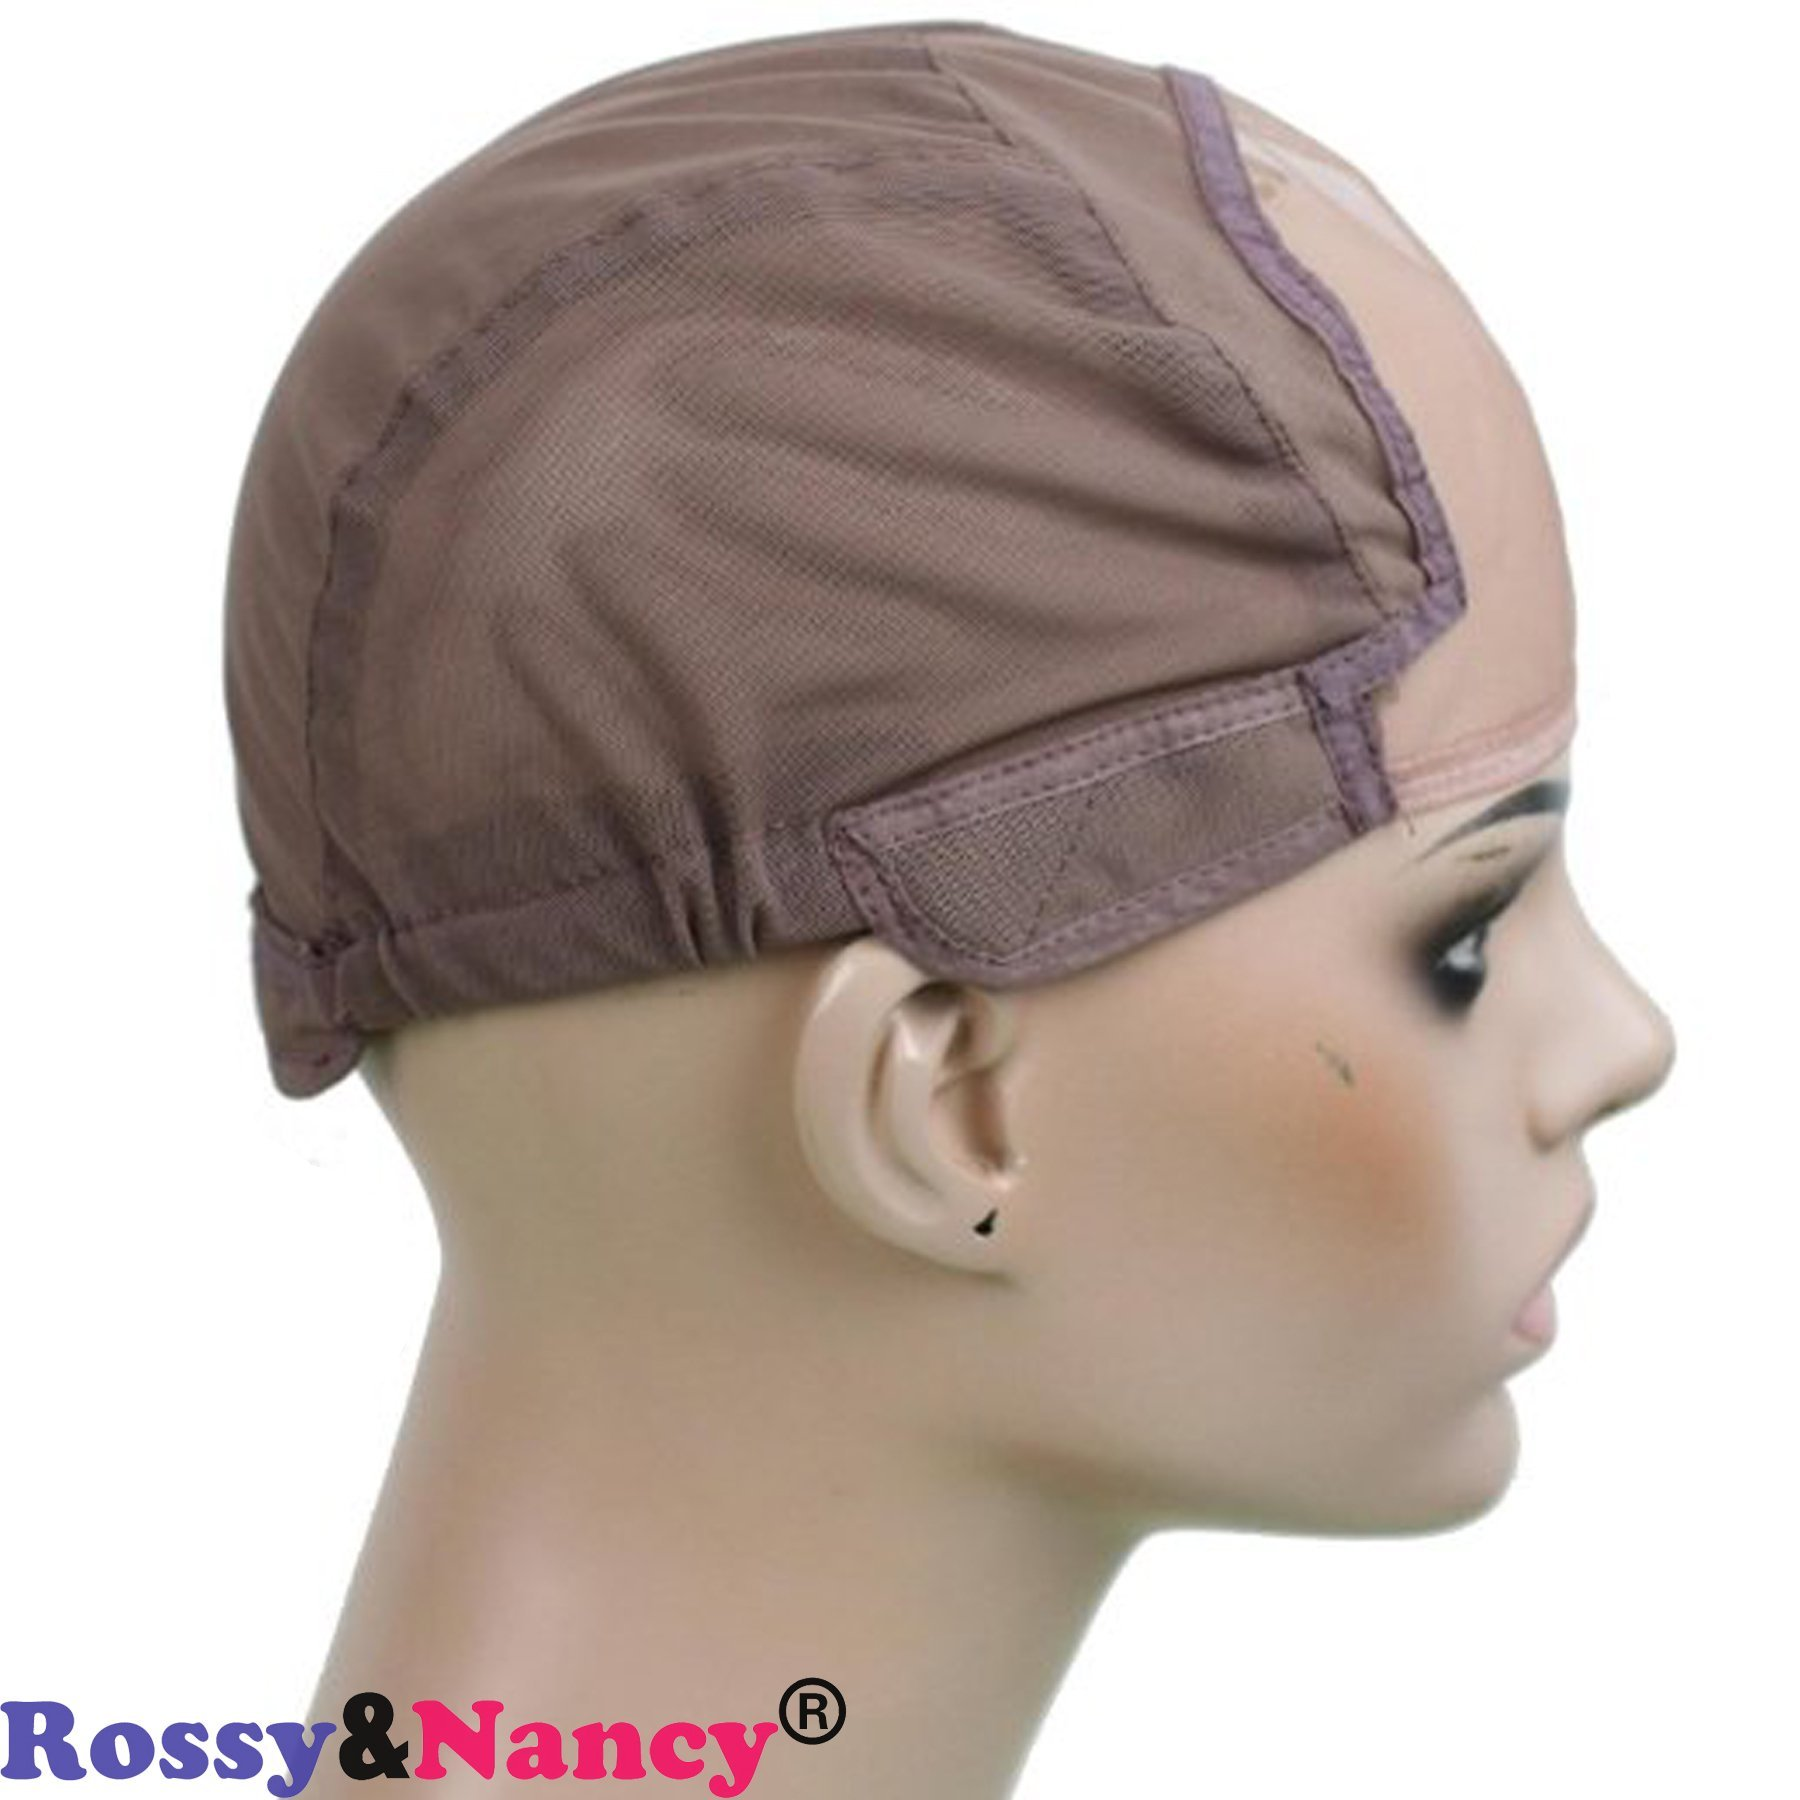 Rossy&Nancy Best Gluess Silk Swiss Lace Net Ear to ear stretch wig caps with adjustable straps for making Wigs by Rossy&Nancy (Image #4)